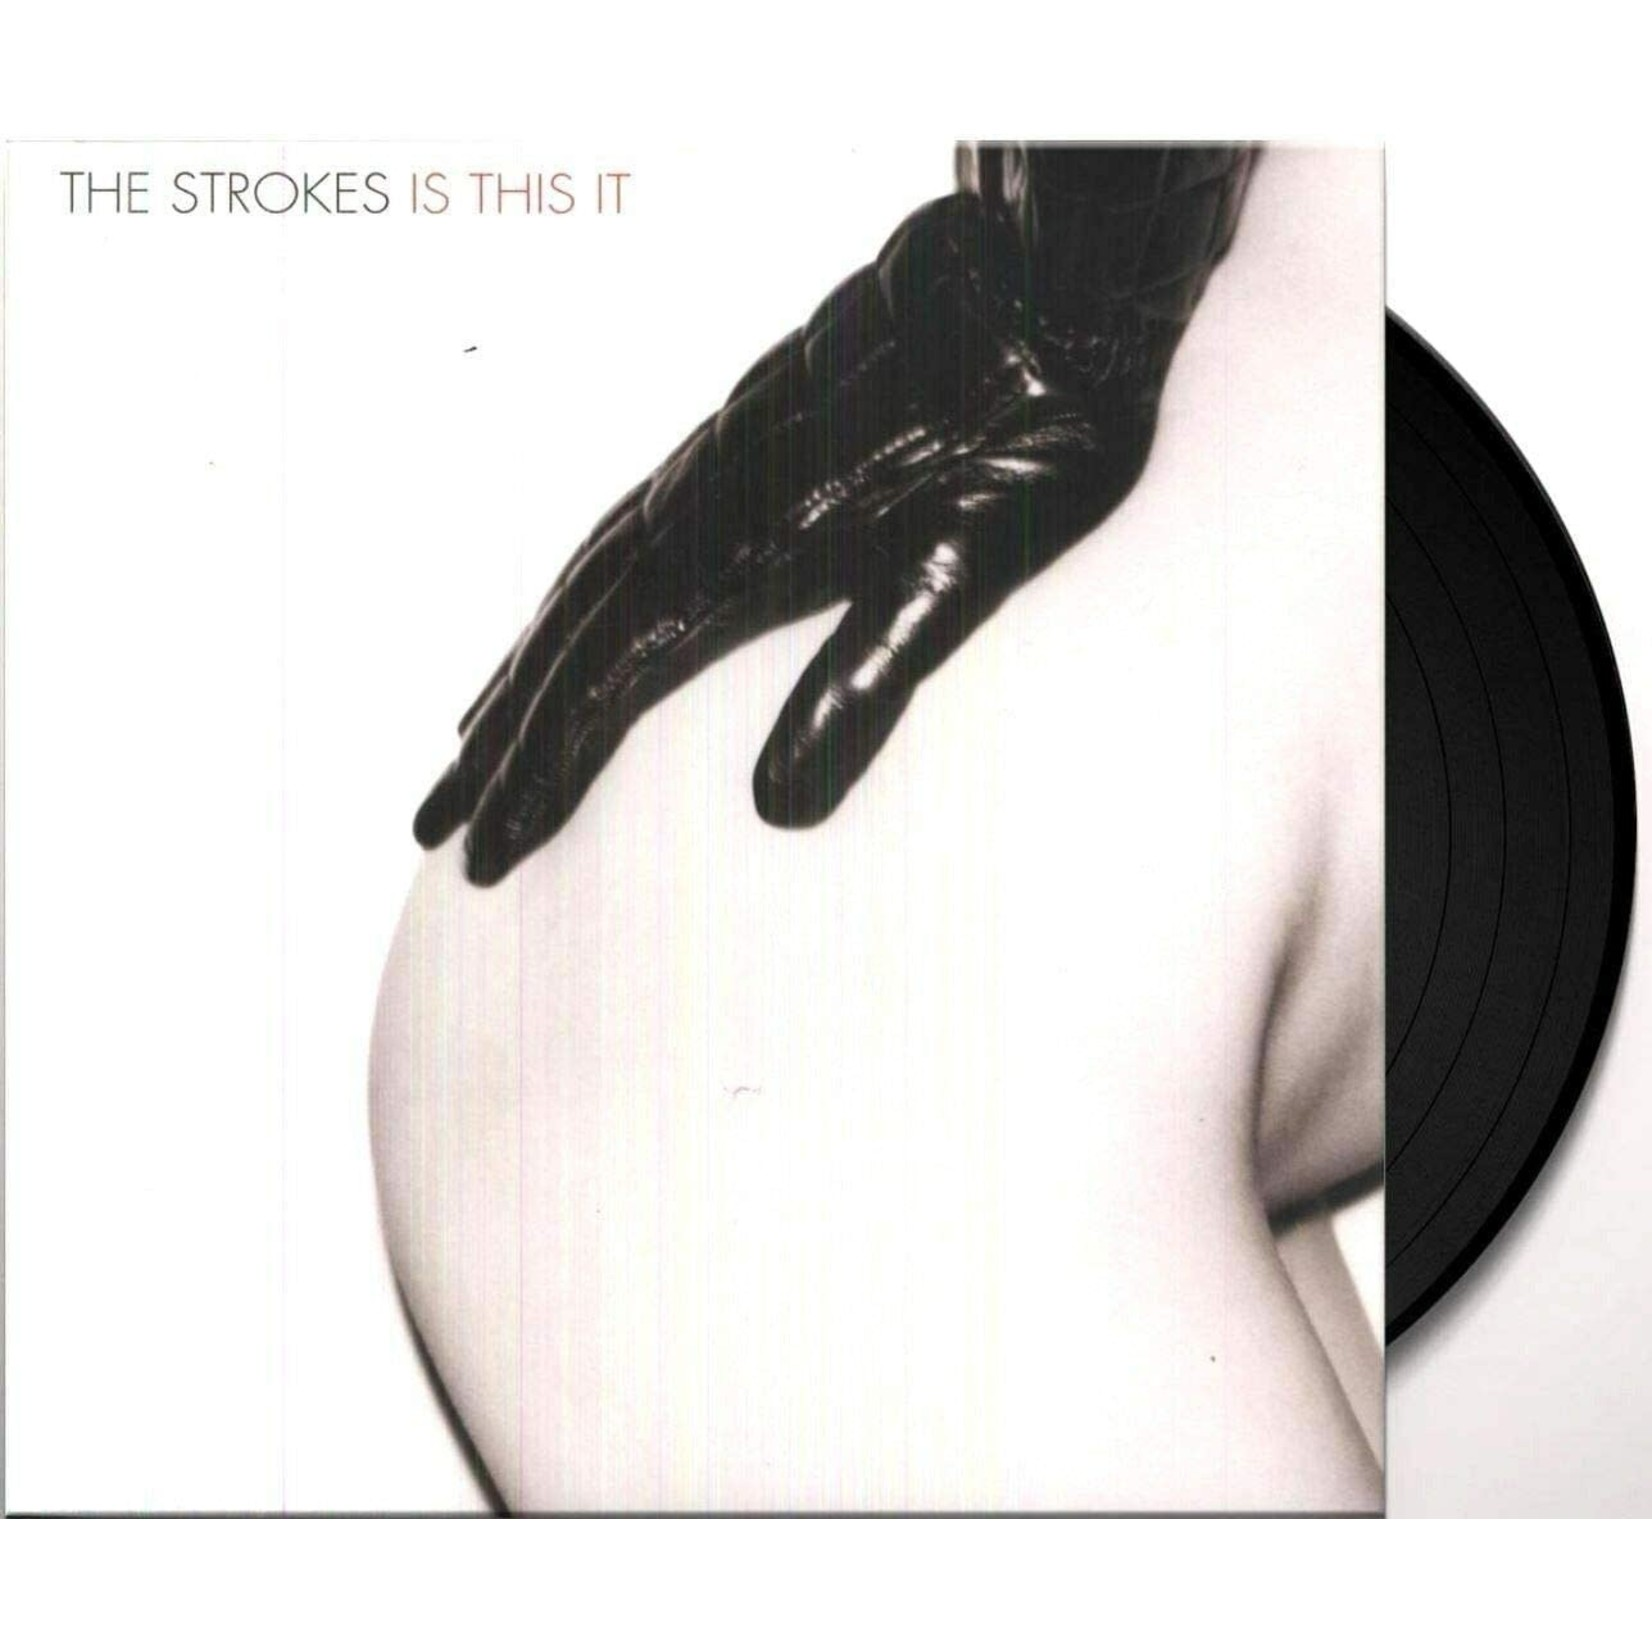 THE STROKES IS THIS IT  LP